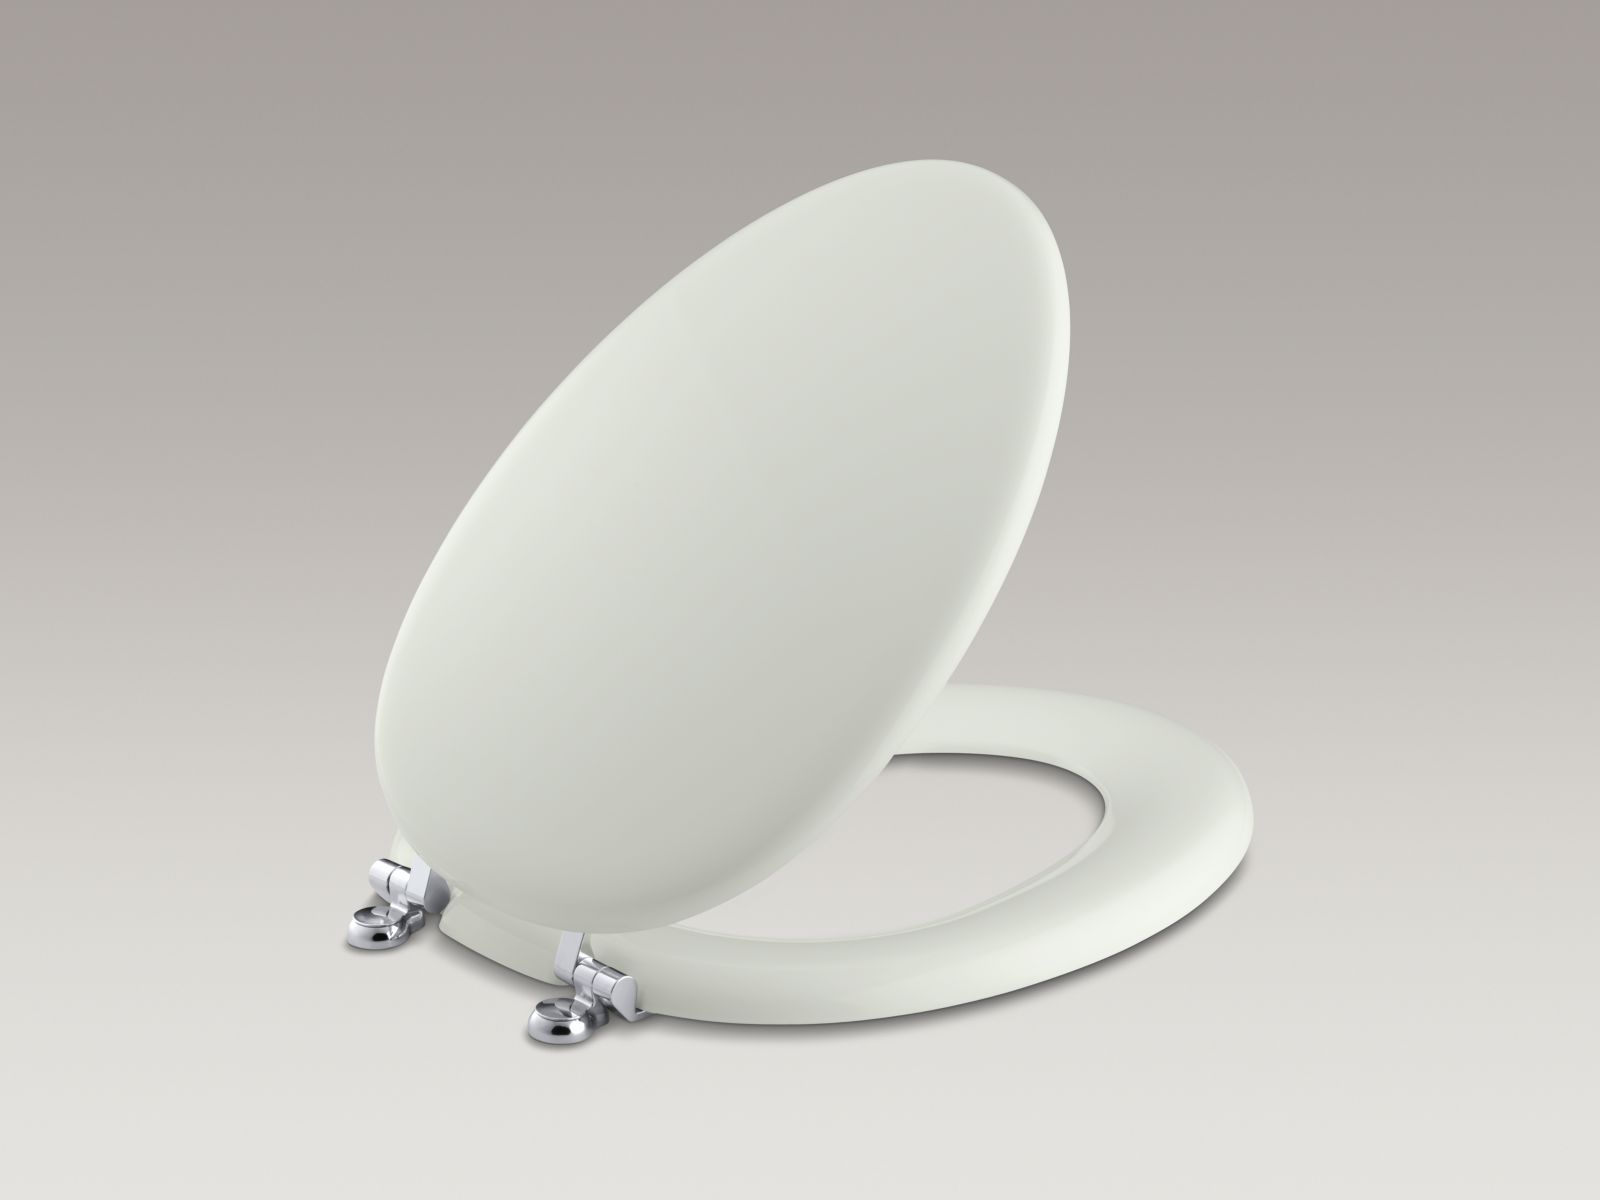 Kohler K-4701-CP-NY Kathryn Elongated Toilet Seat with Polished Chrome Hinges Dune